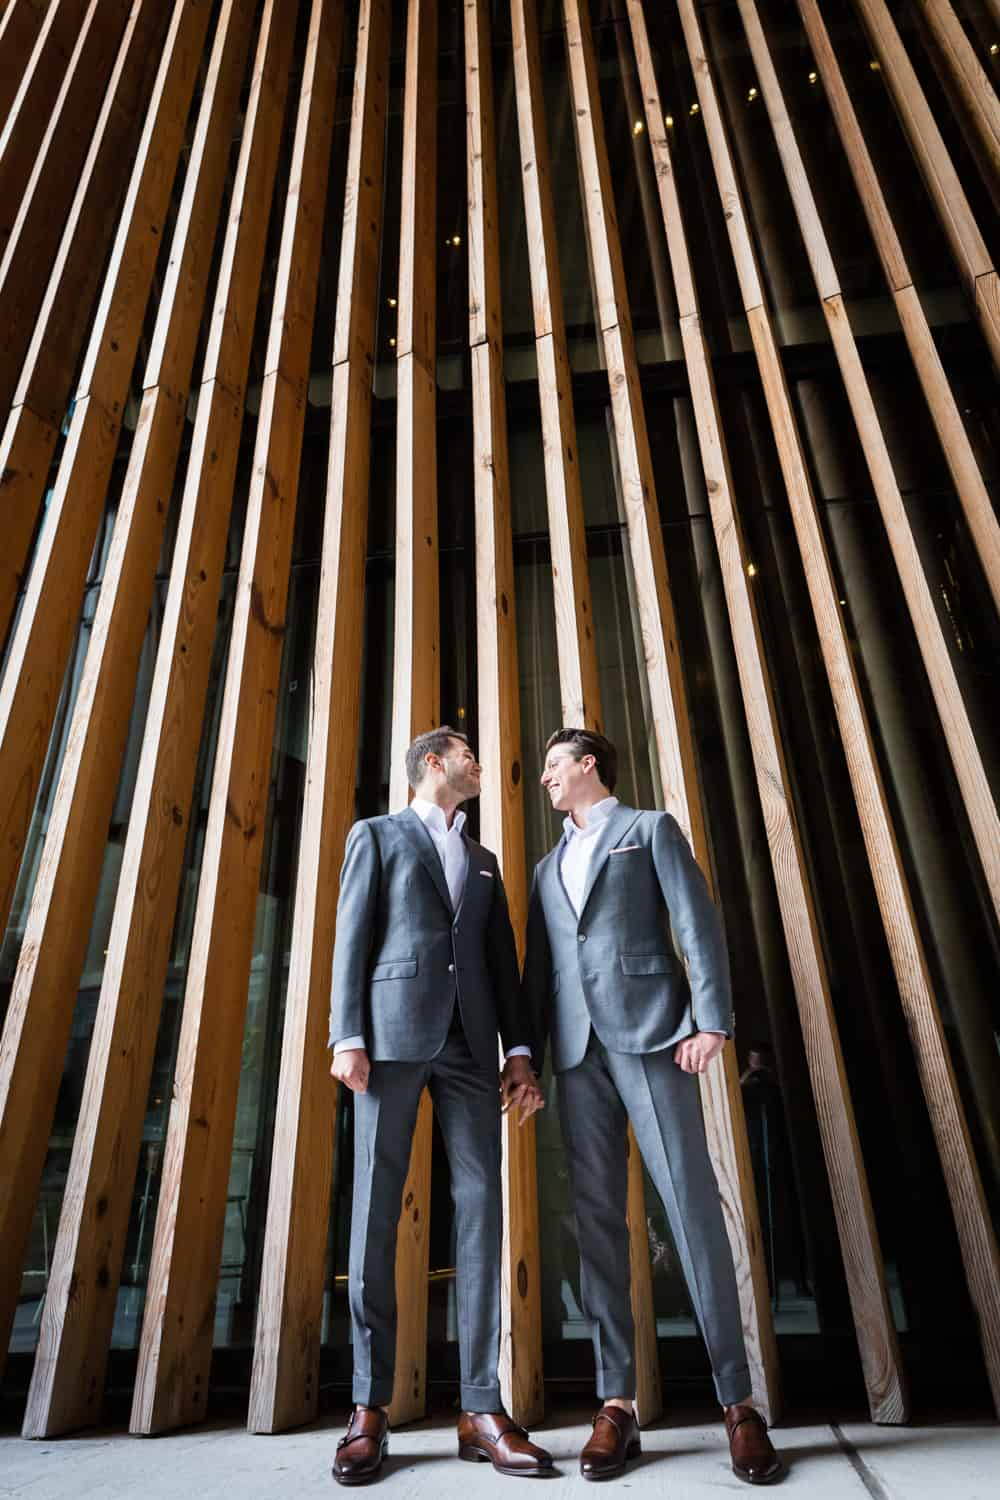 Greenpoint Loft wedding photos of two grooms standing in front of wall with wooden slats